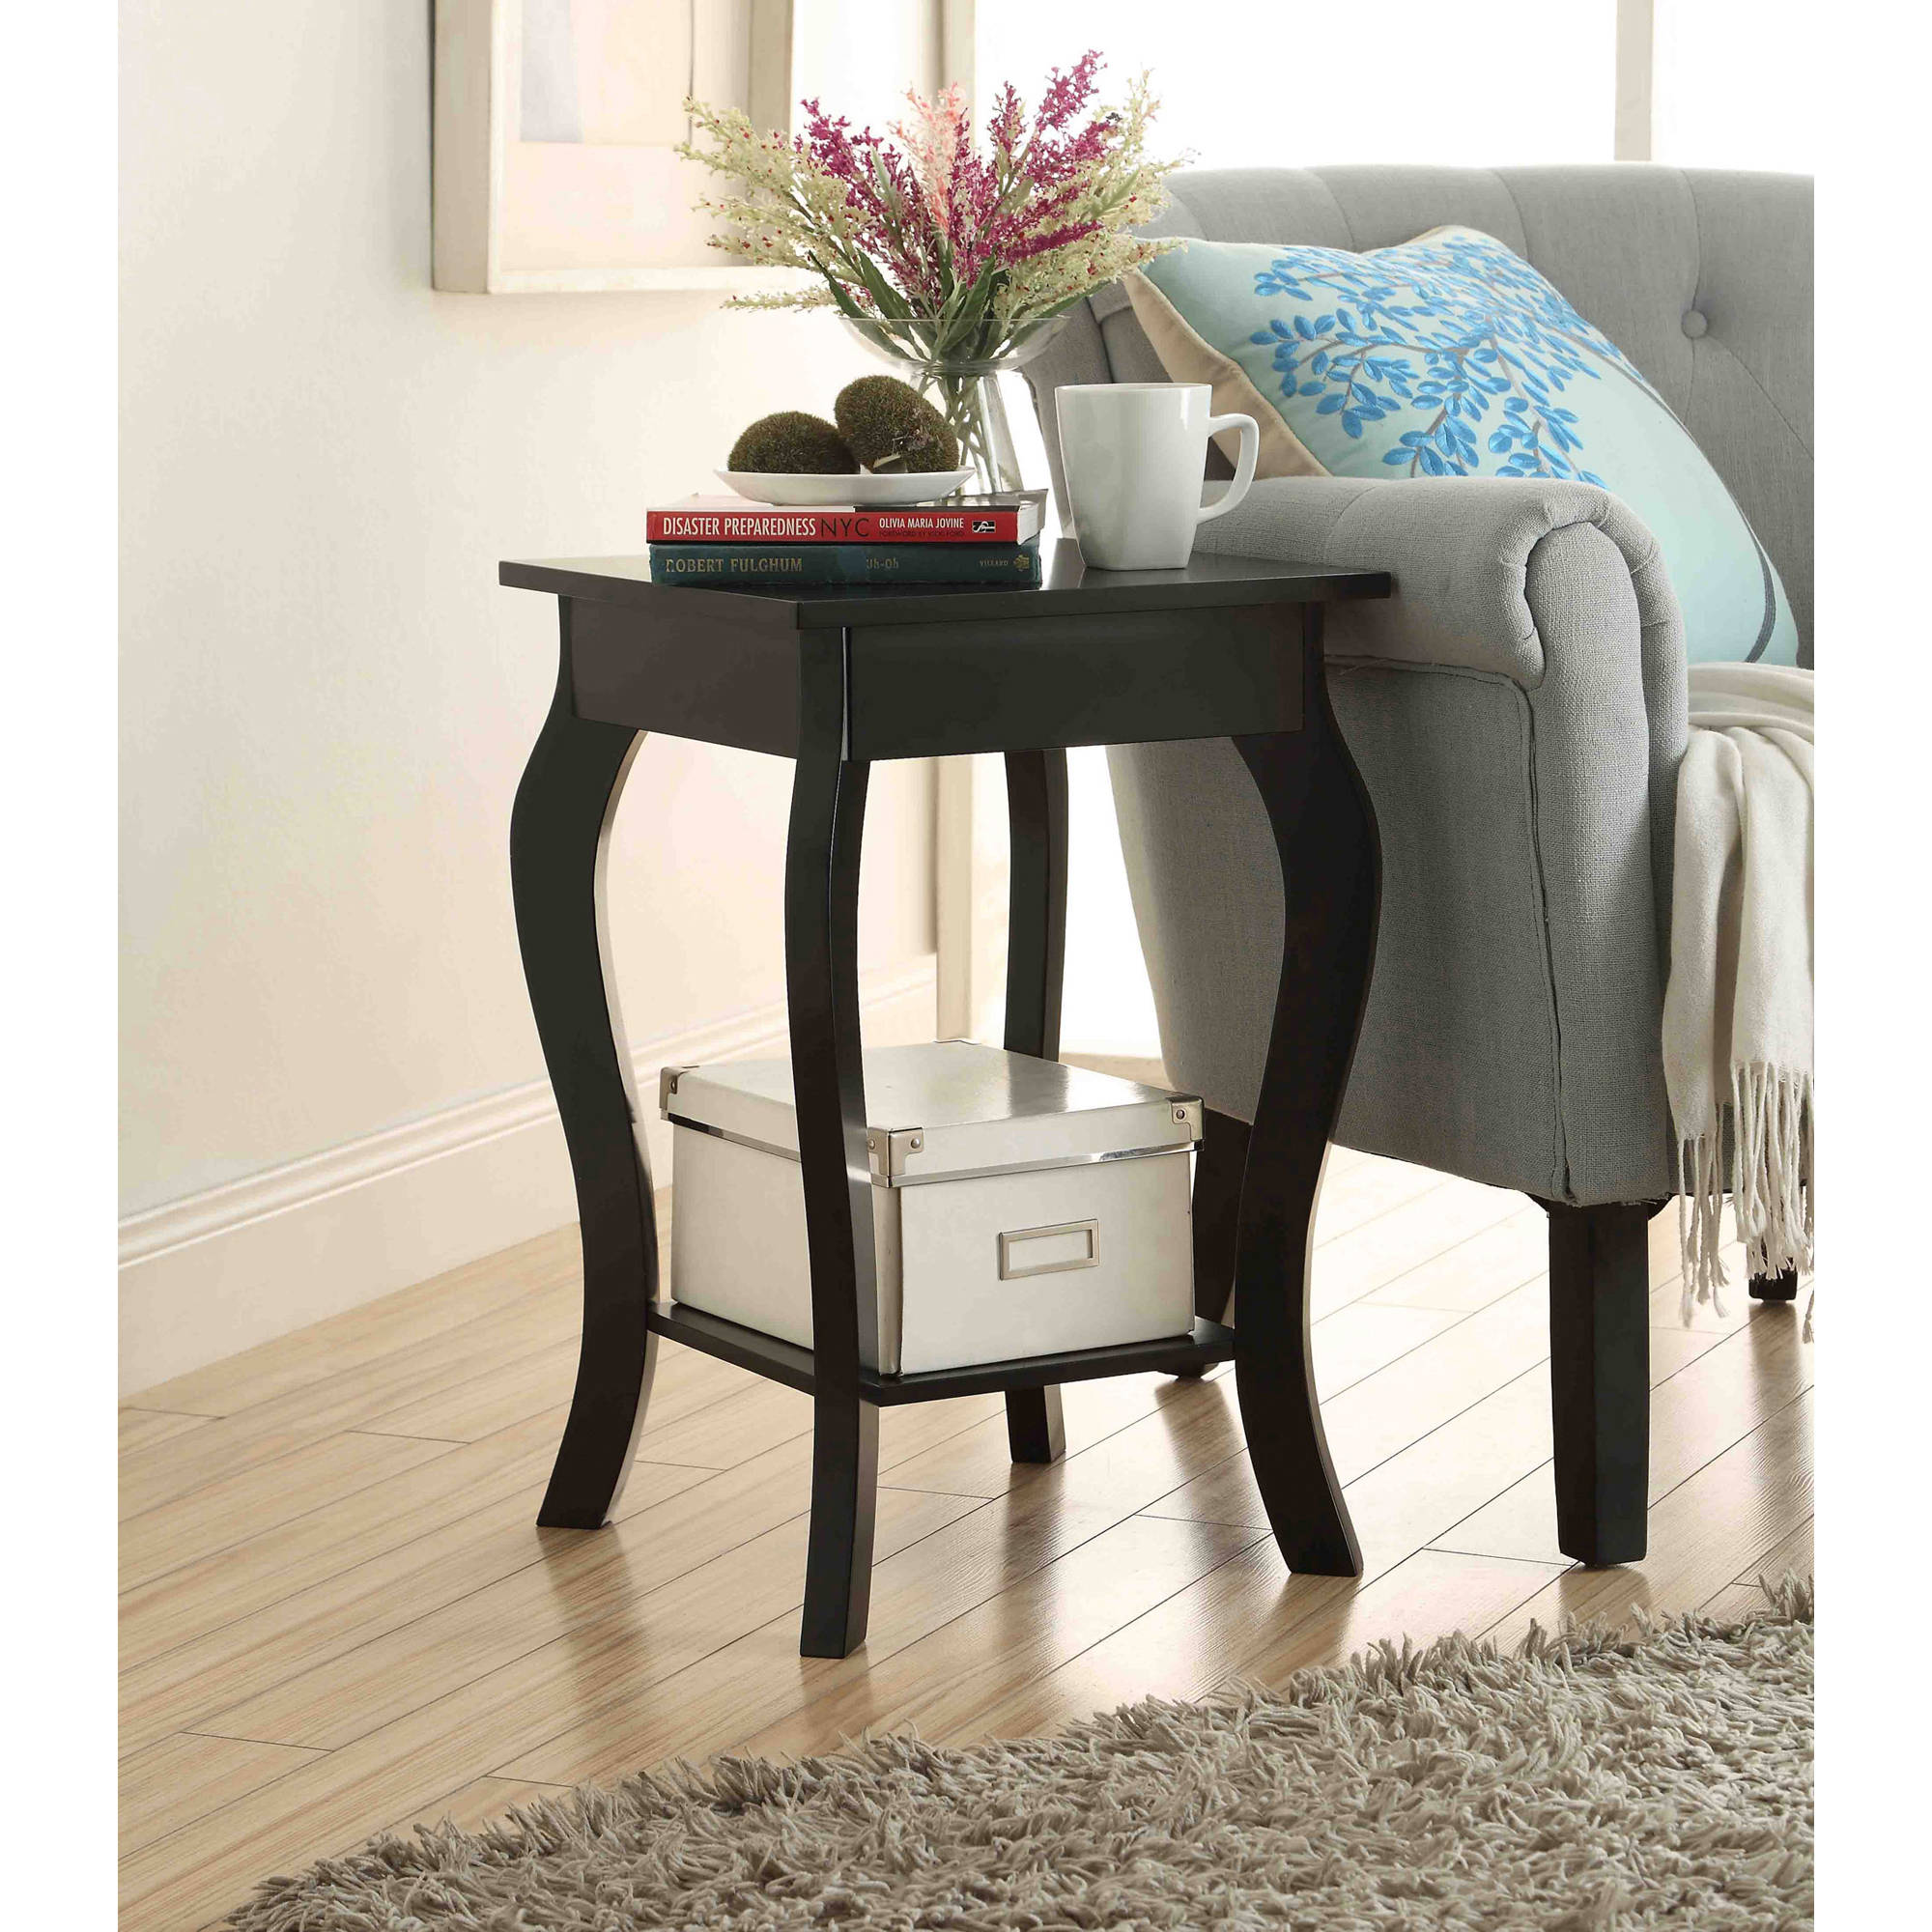 living cabinet threshold tables room round target table ott kijiji furniture decorative accent bench outdoor for gold antique white tall glass and modern storage full size wood